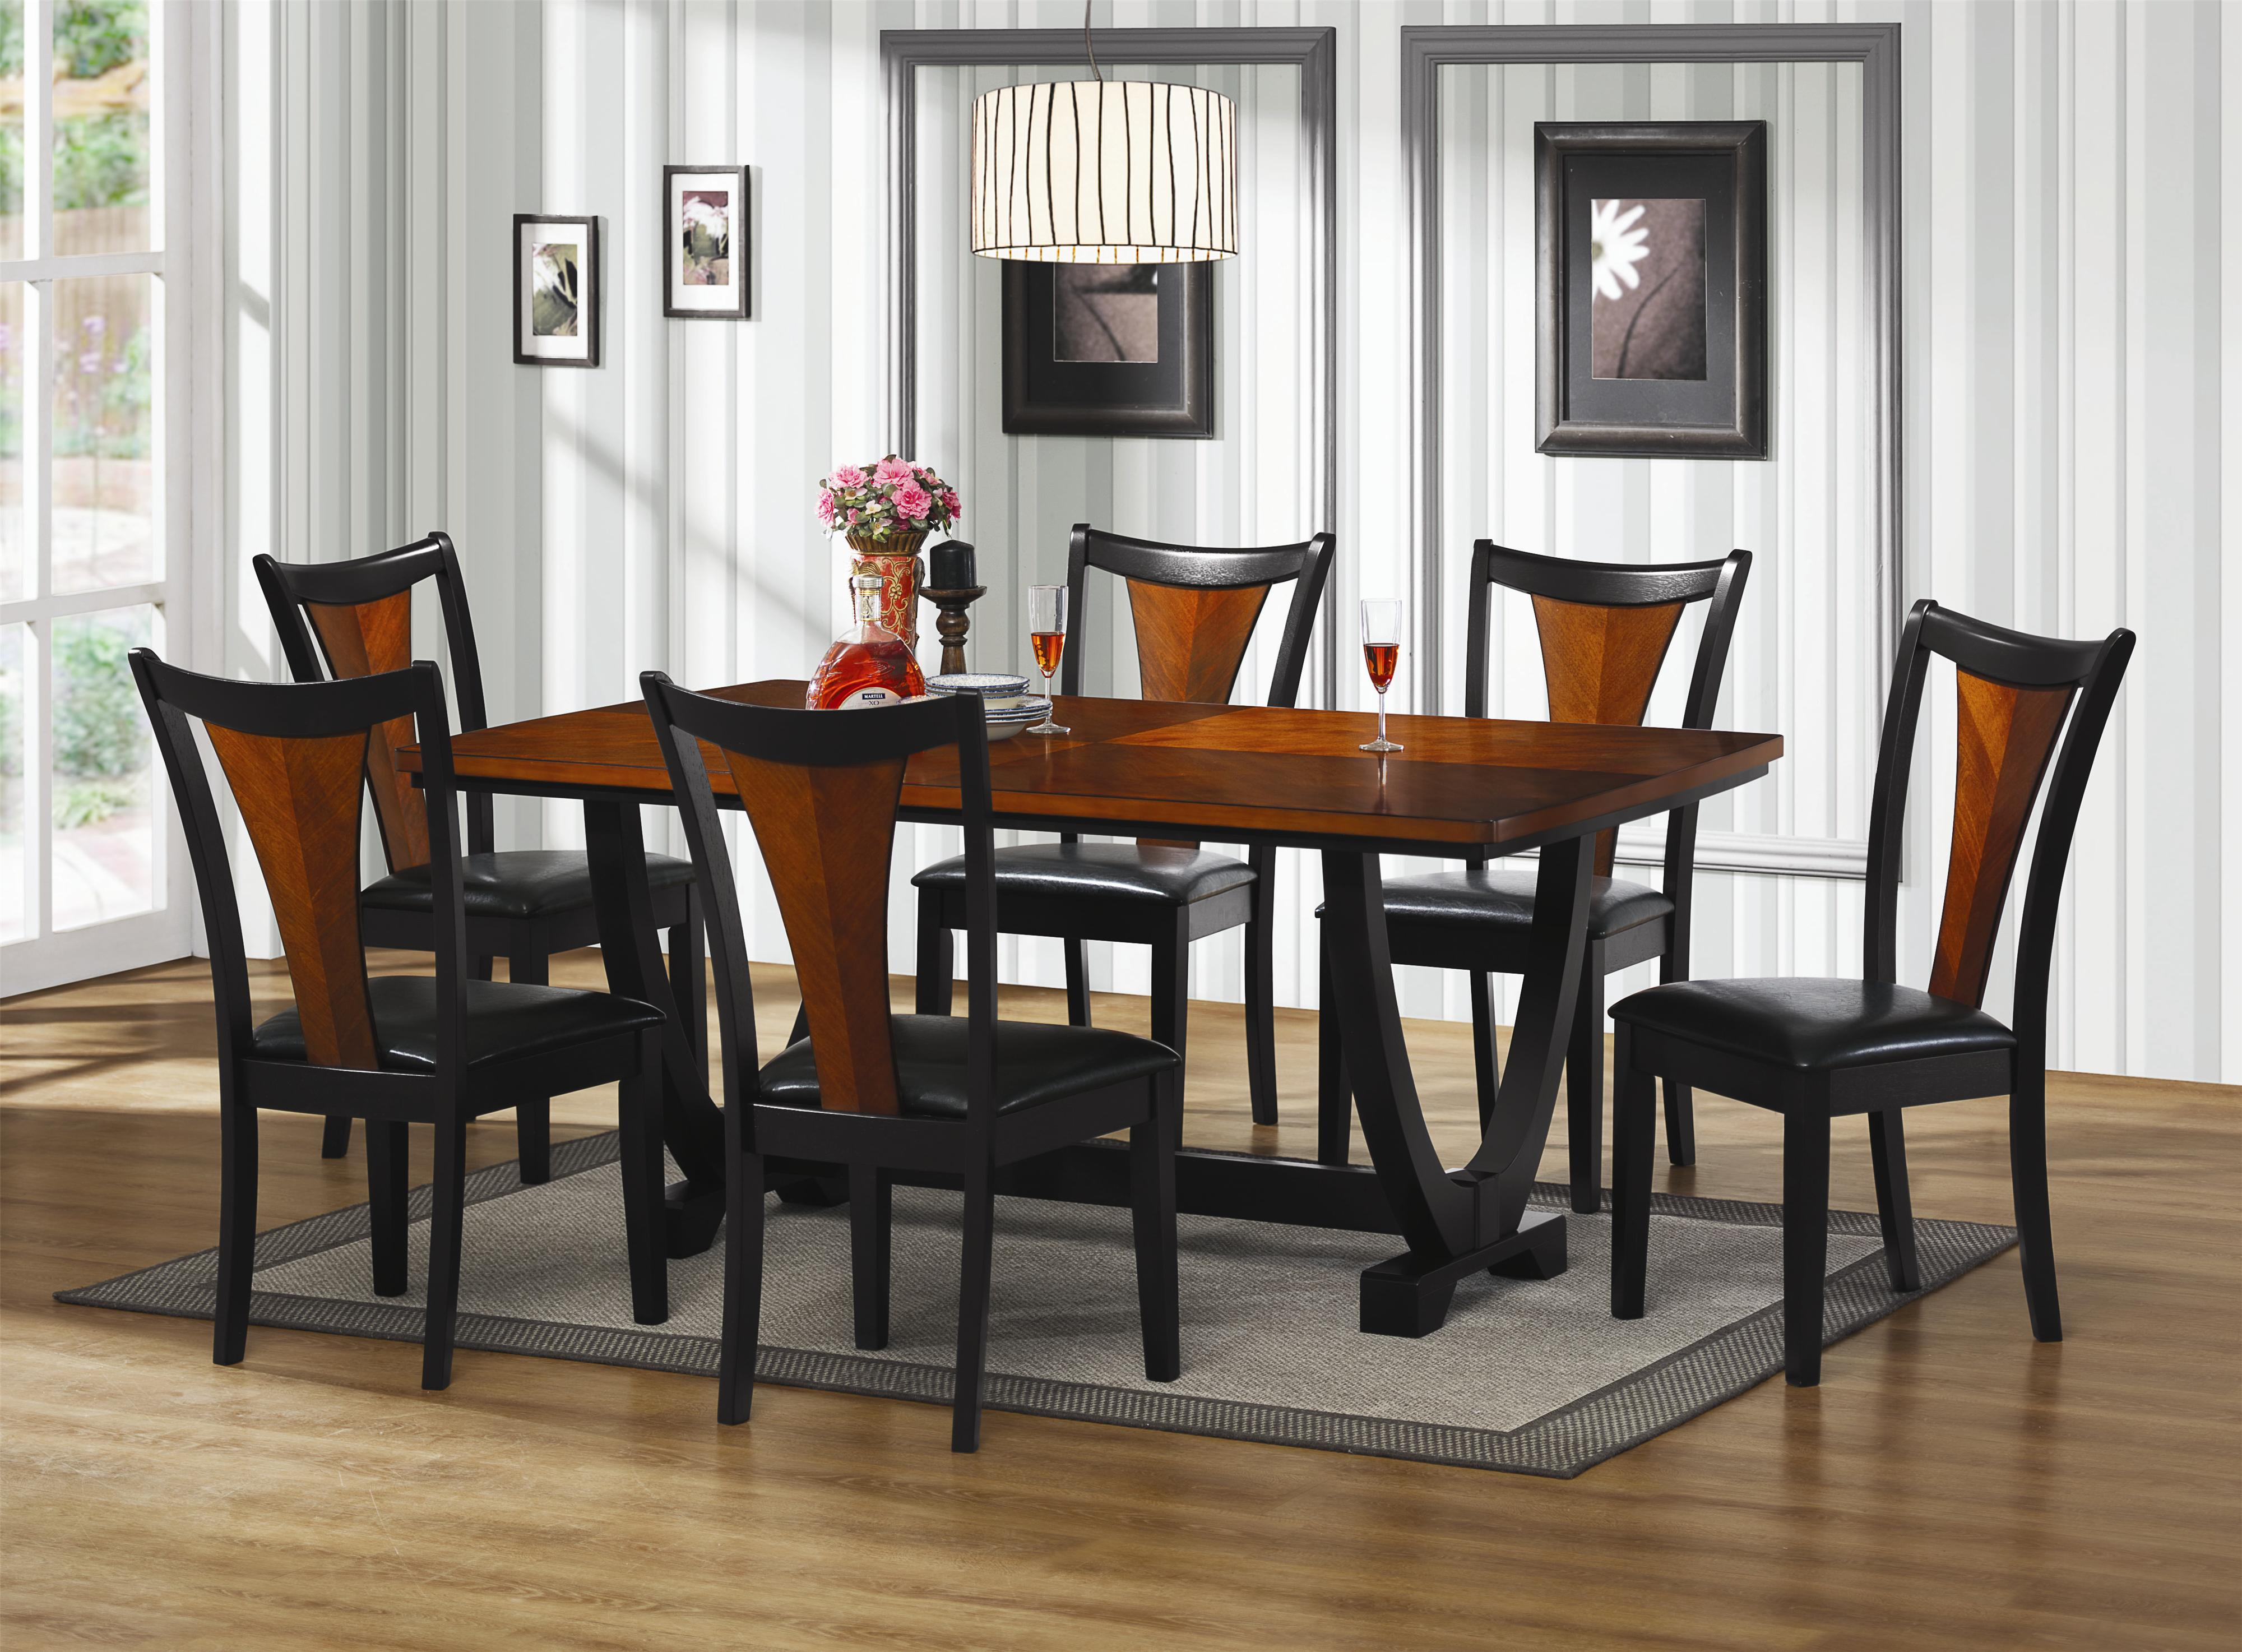 Dining Table And Chairs (Image 4 of 10)